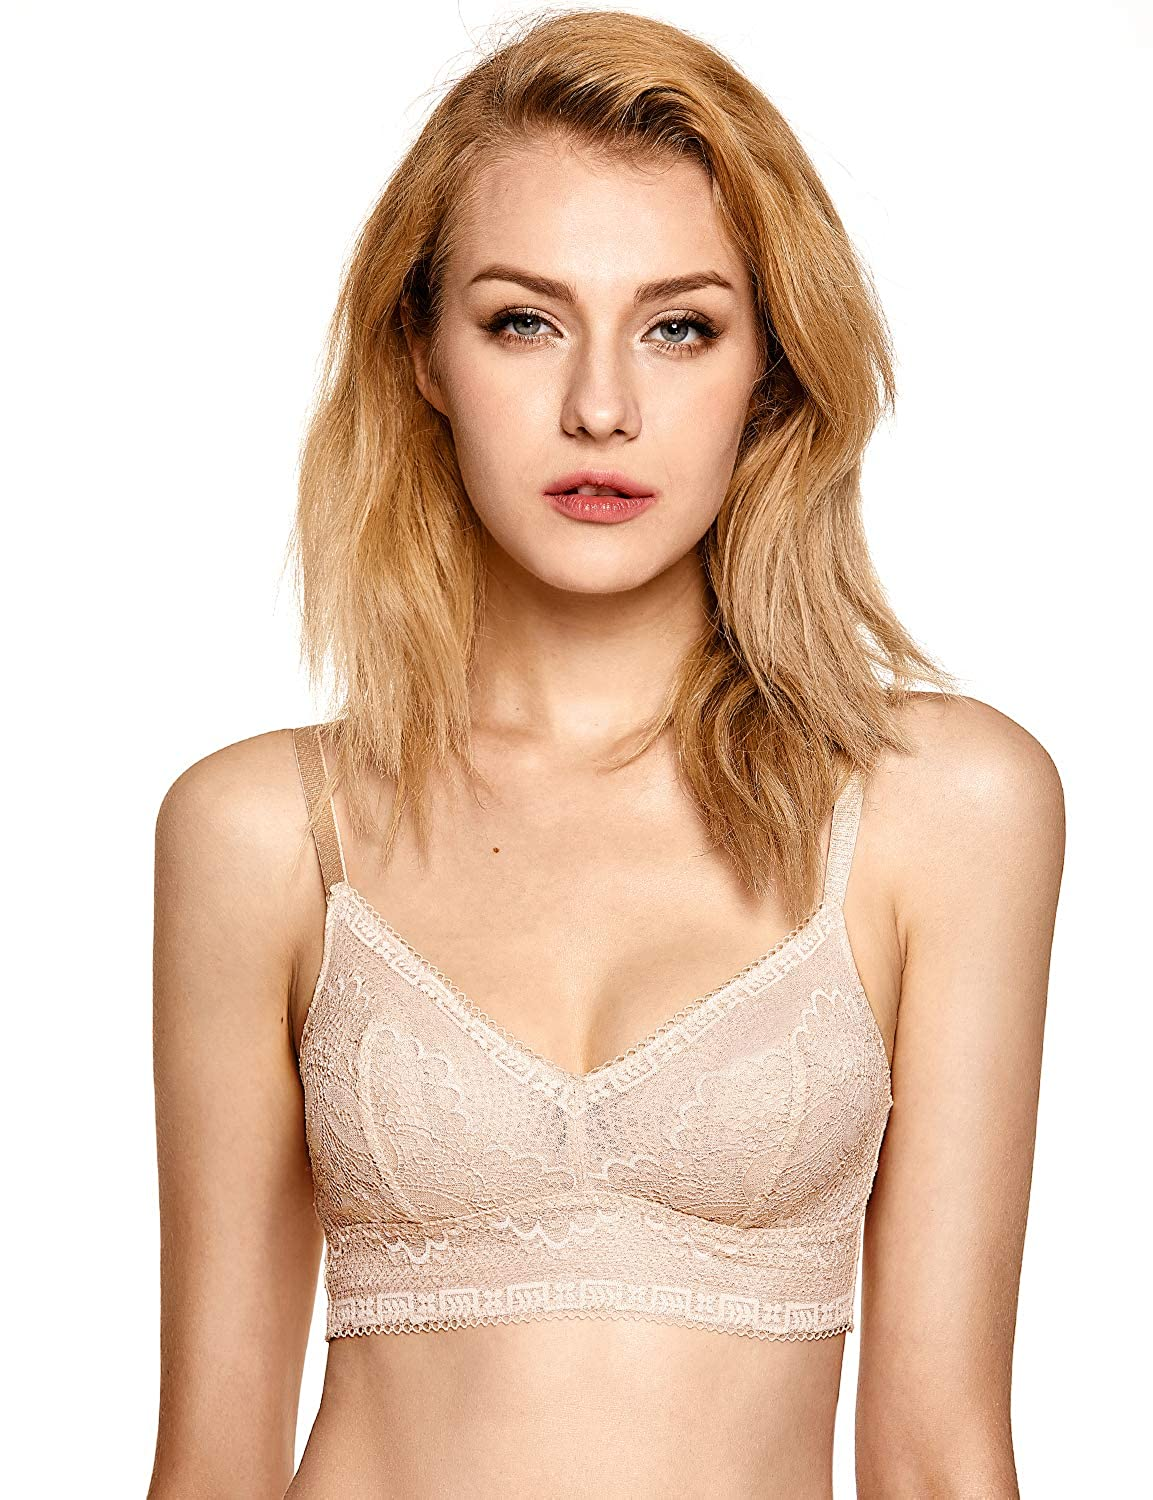 bdb6200e2a1db DOBREVA Women s Removable Pads Wirefree Longline Deep V Floral Lace Bralette  at Amazon Women s Clothing store